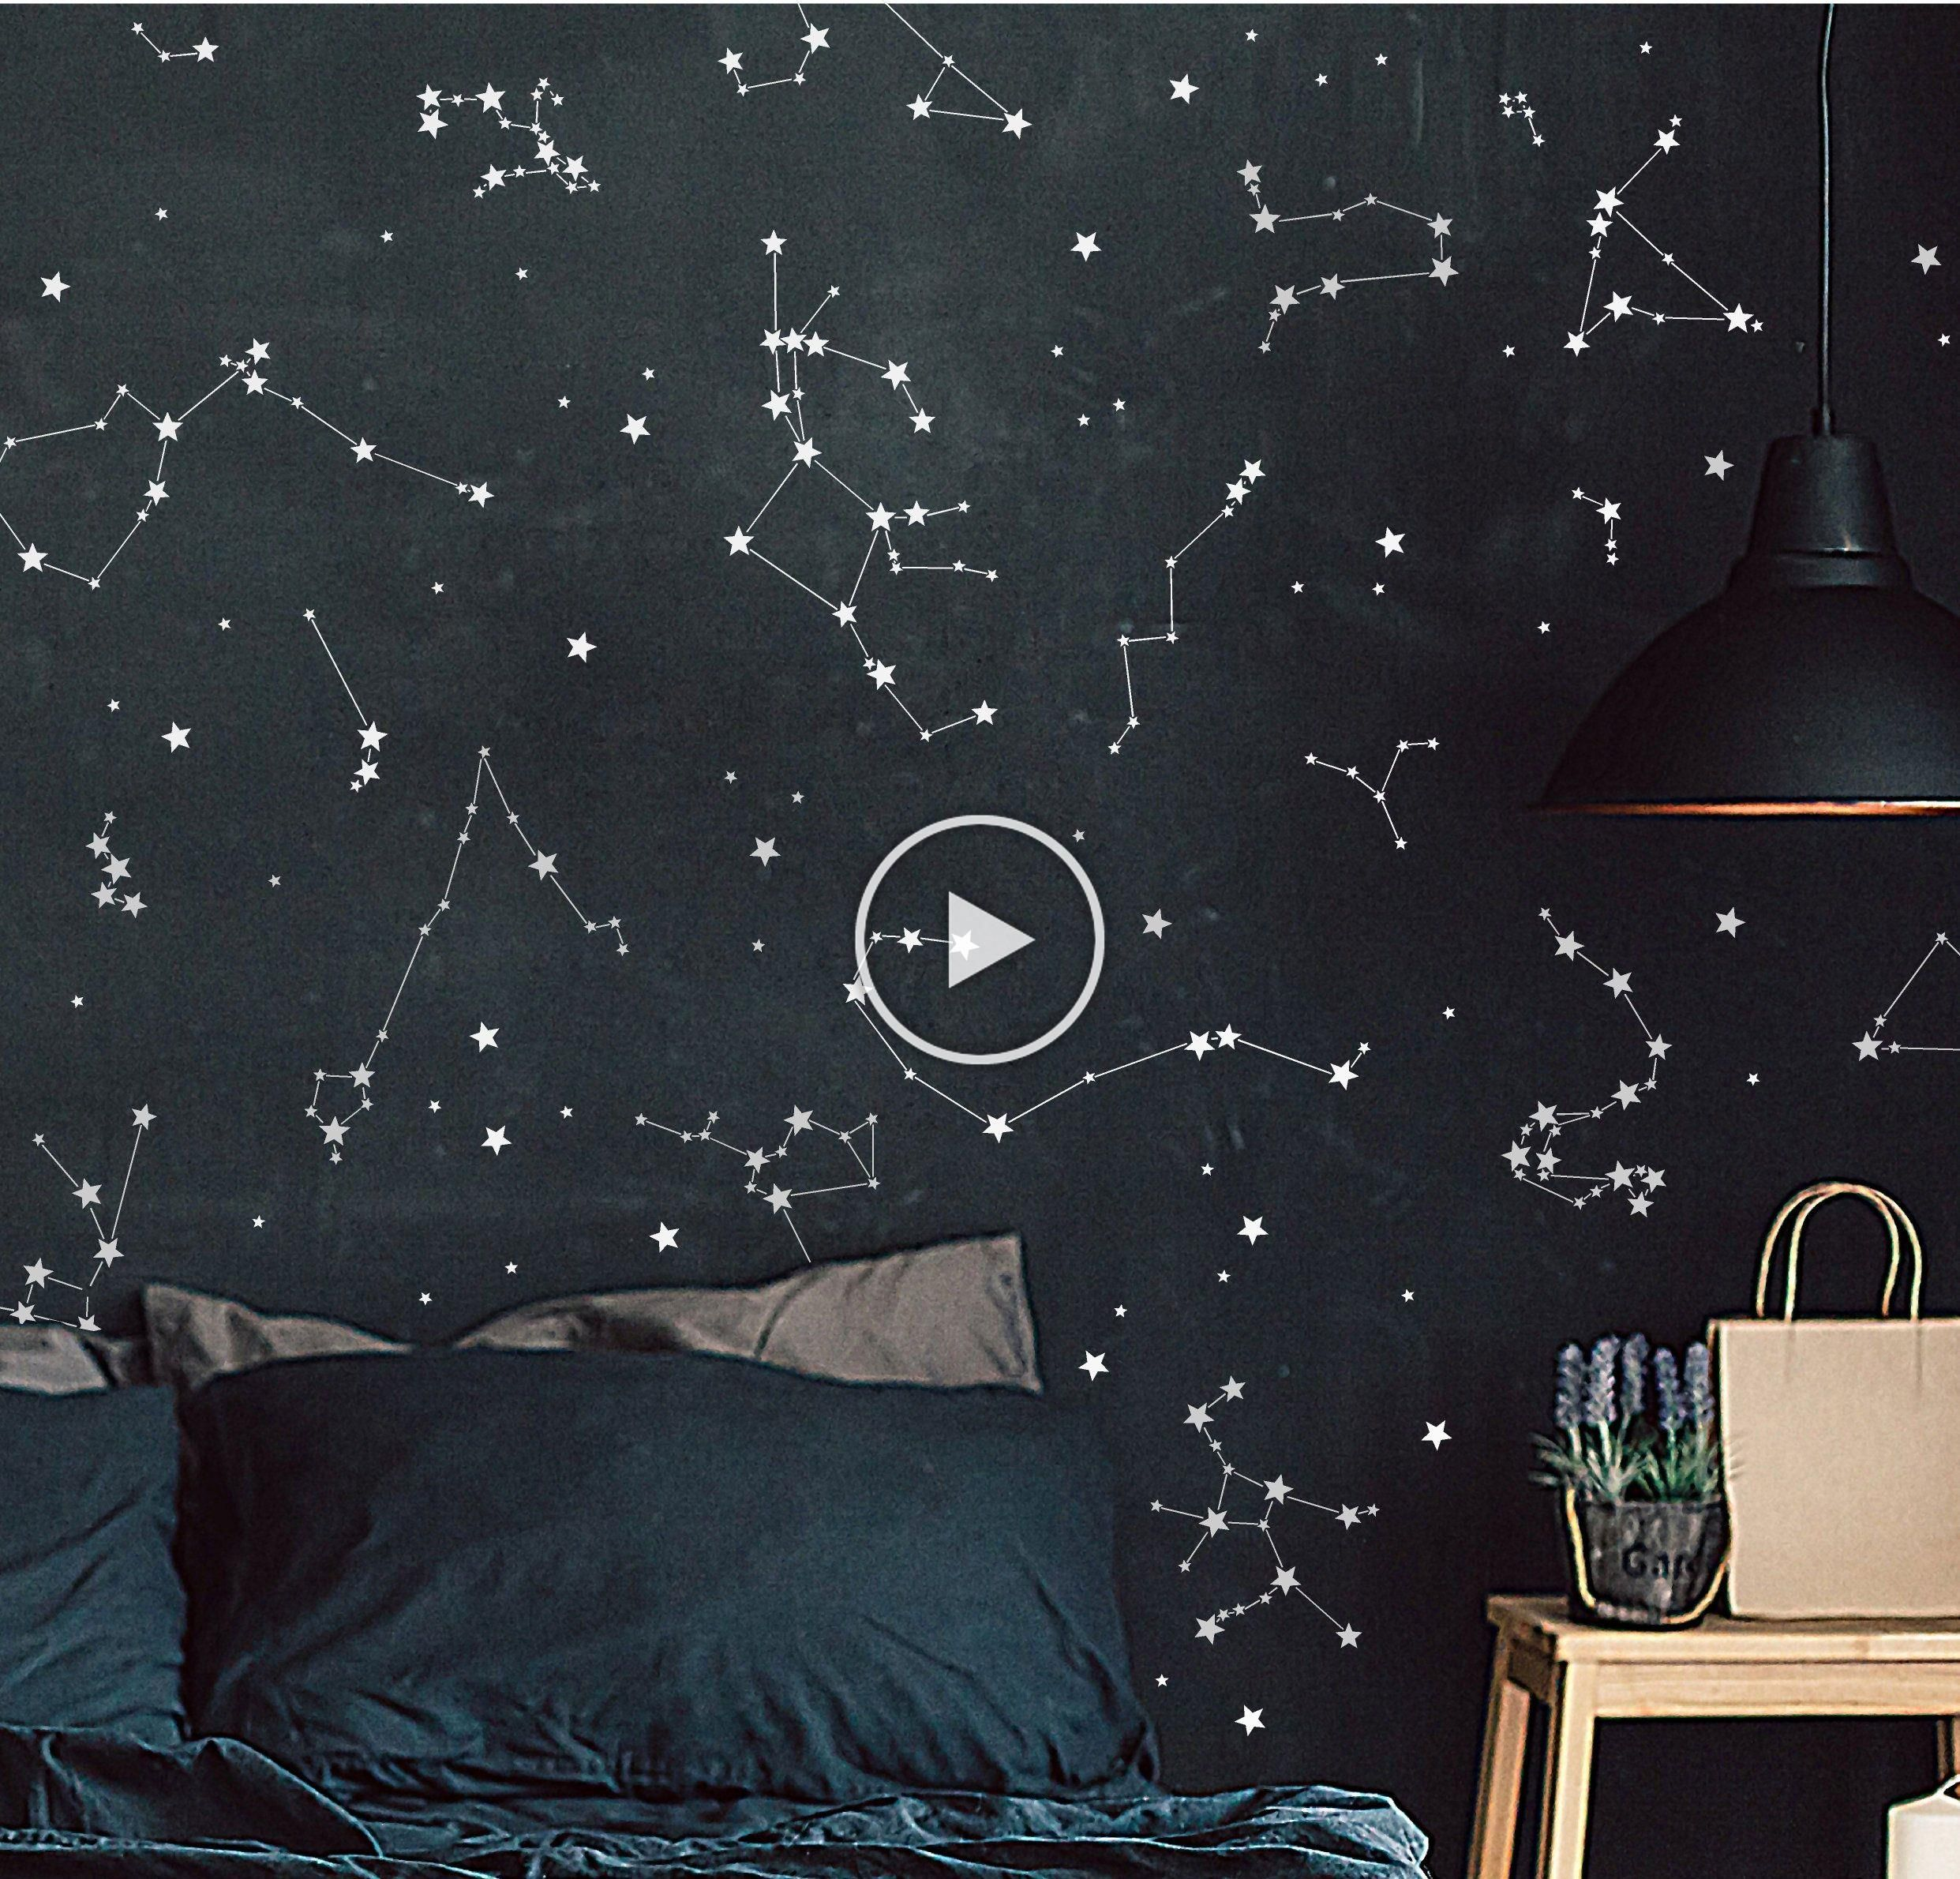 Constellation Stickers Constellation Decals Astronomy Wall Art